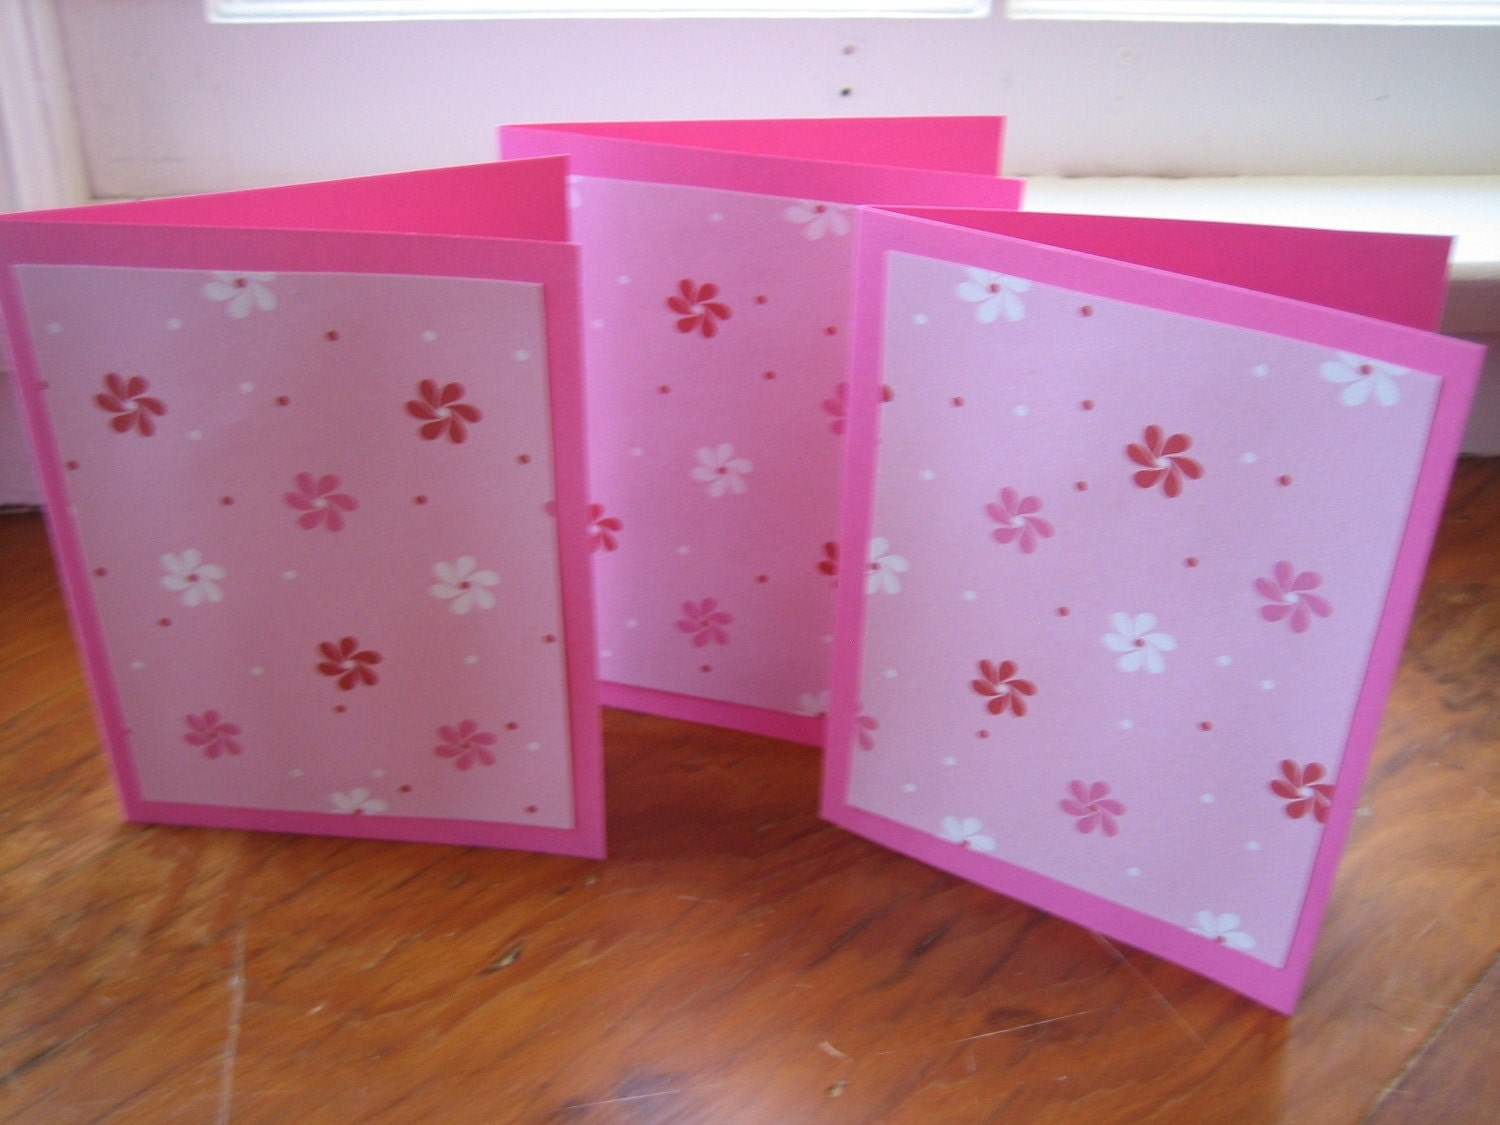 SALE - Flower Shimmer Greeting Cards - Set of Three